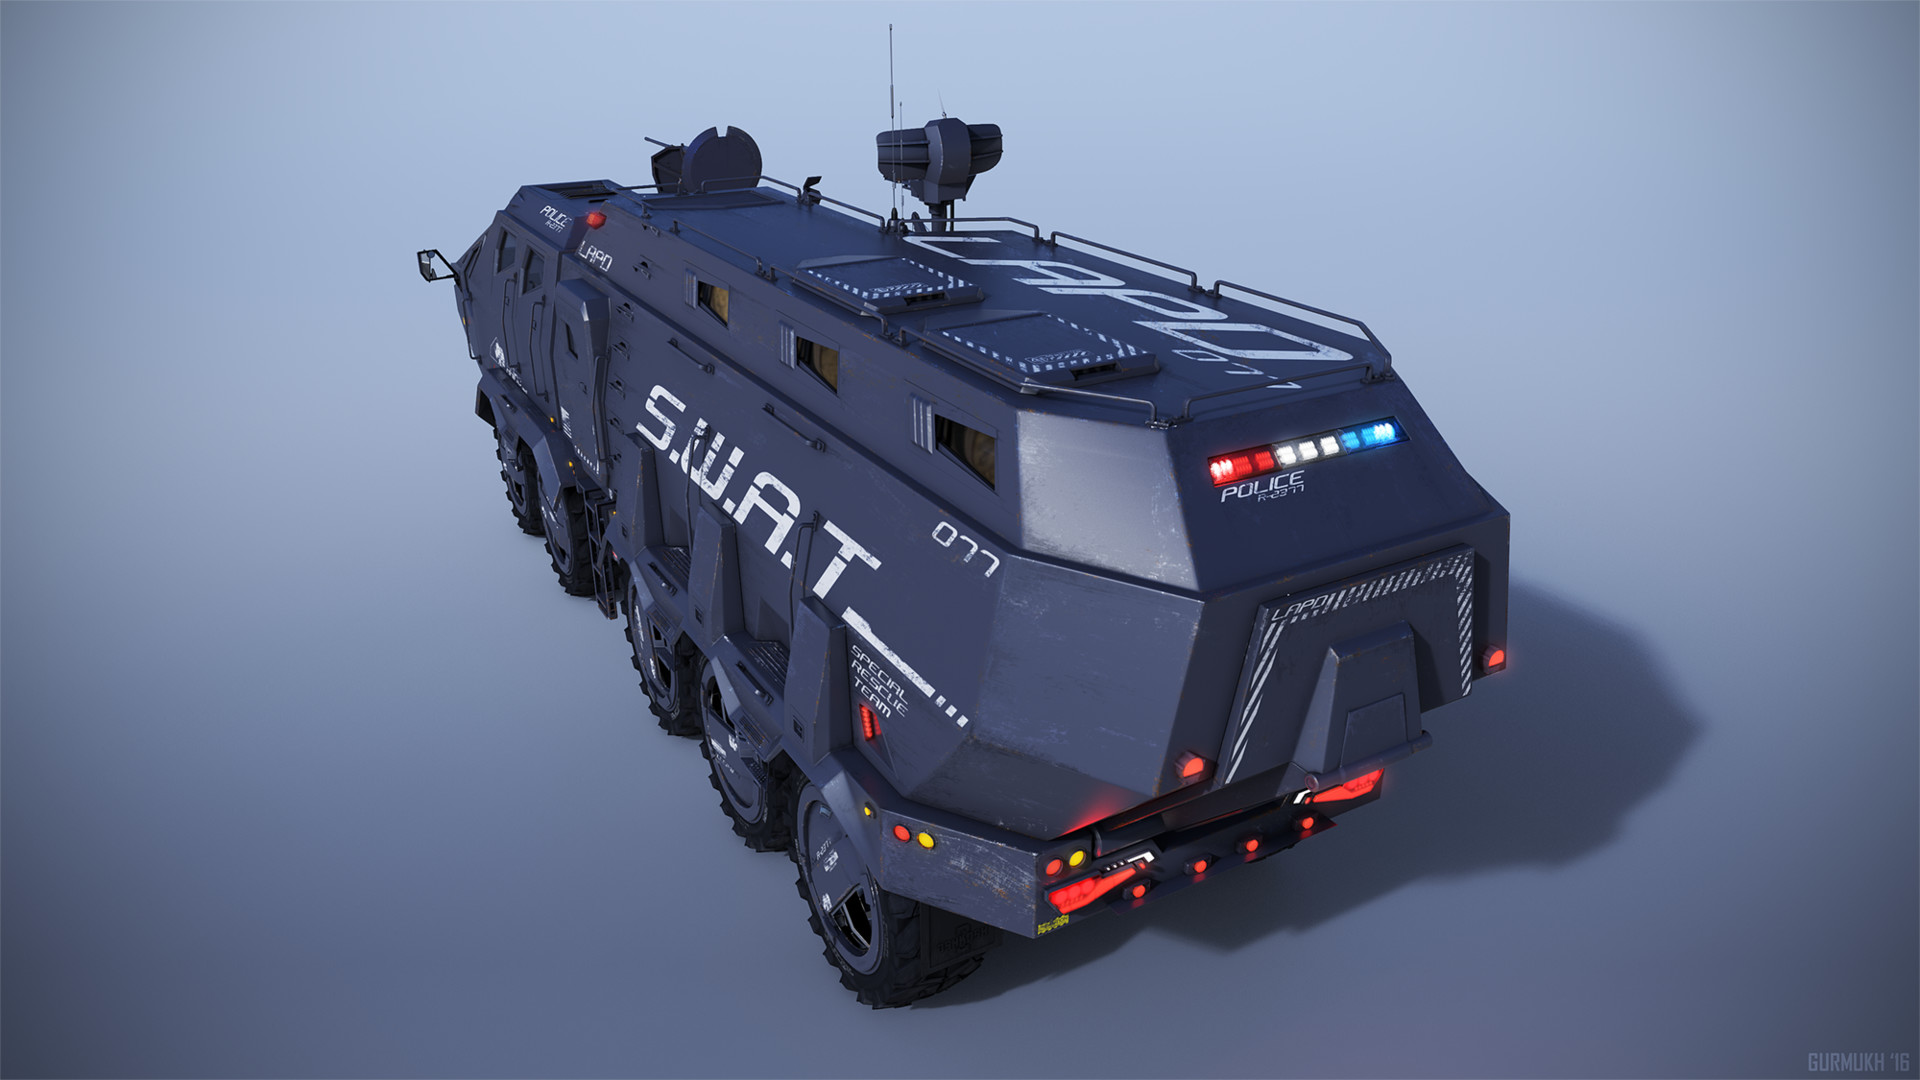 Gurmukh bhasin gurmukh swat truck final 02bs